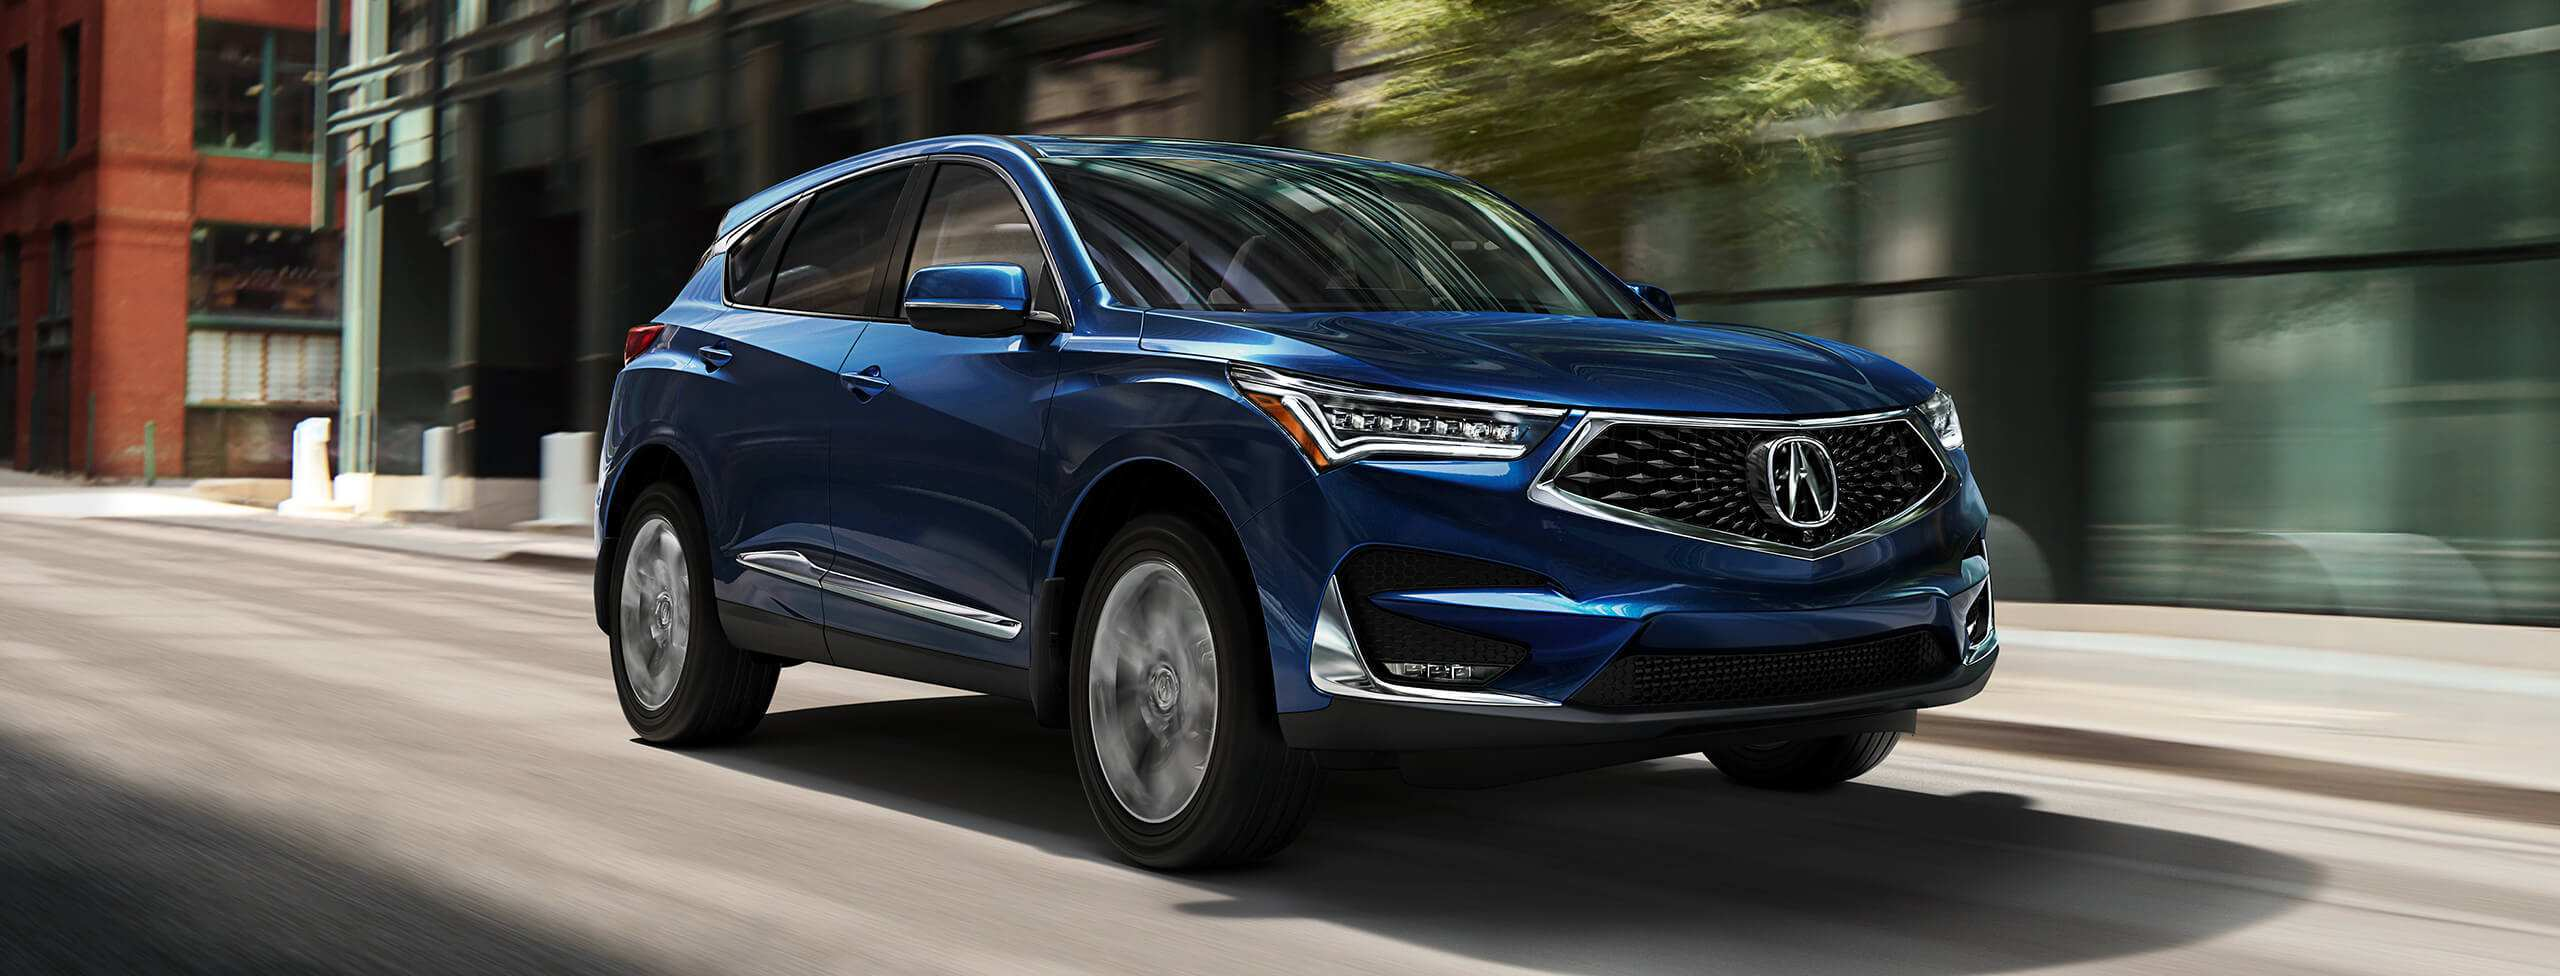 34 All New When Will Acura Rdx 2020 Be Available Concept